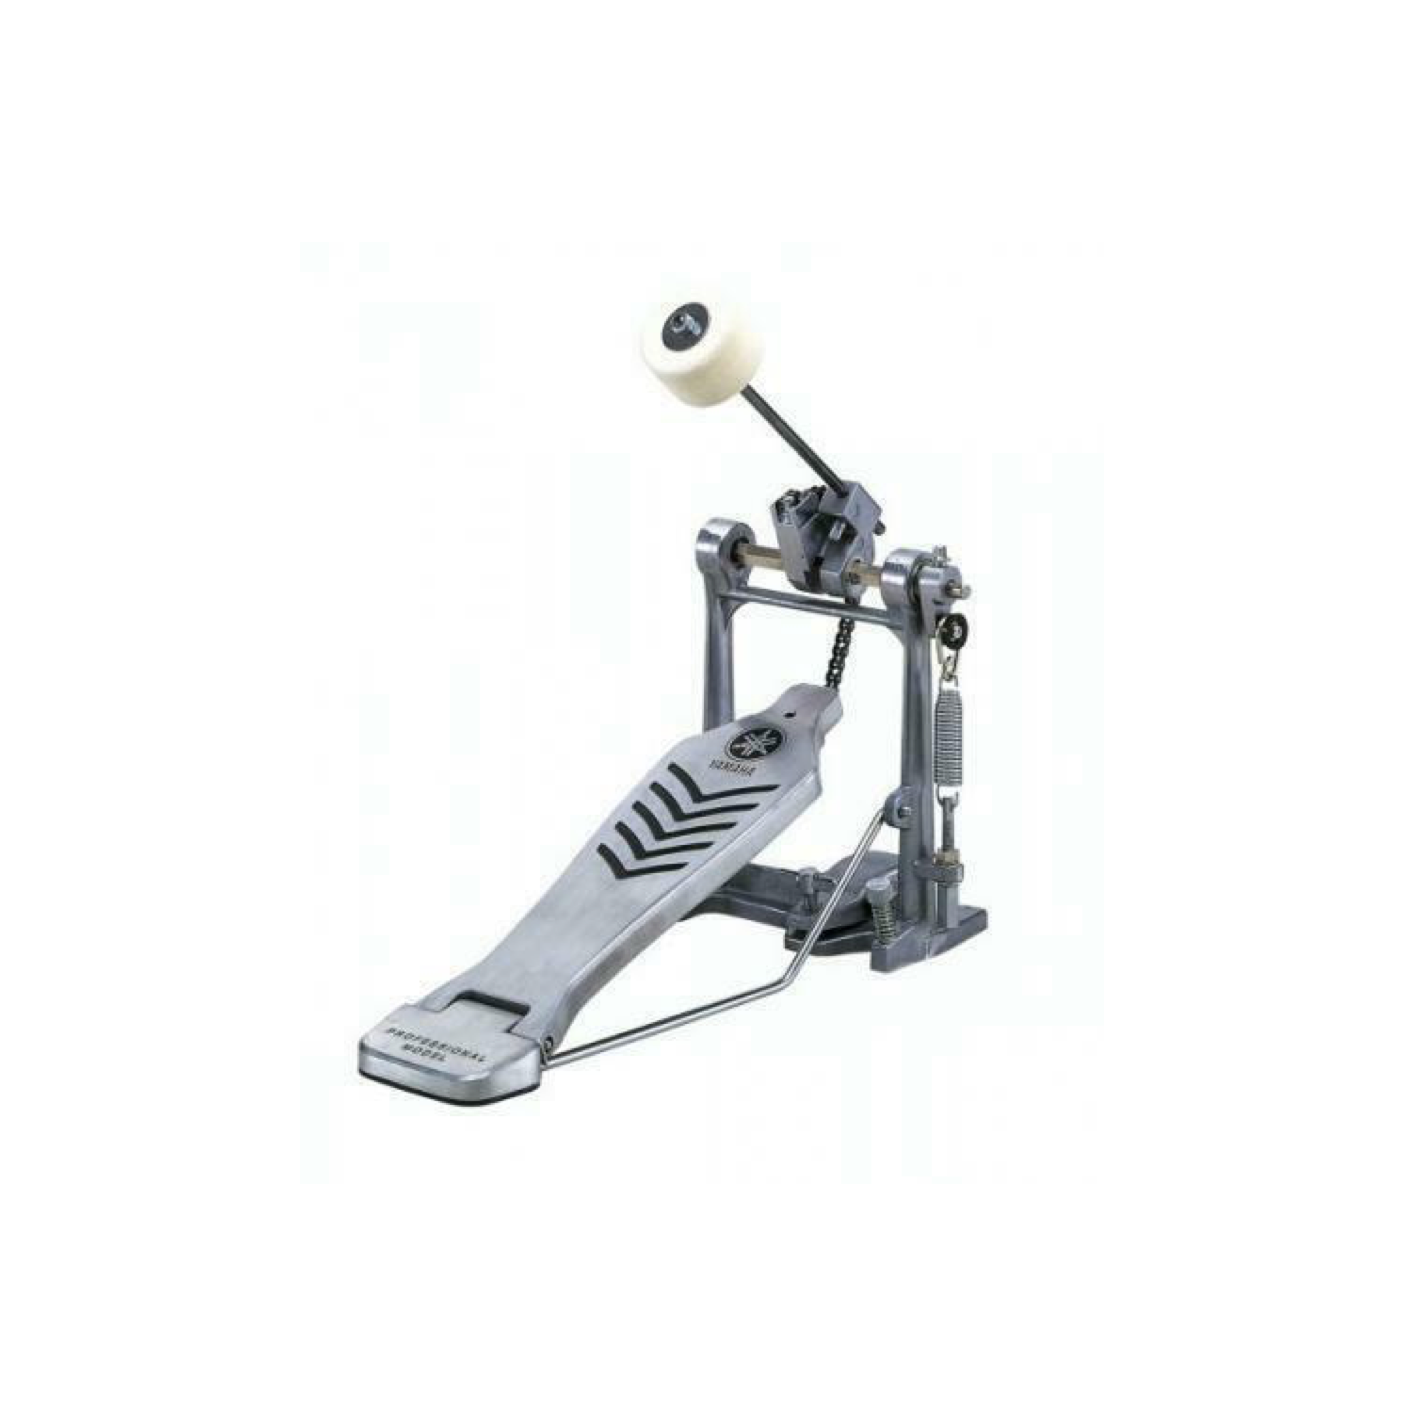 Yamaha FP7210A Single Bass Drum Pedal (Second Hand)